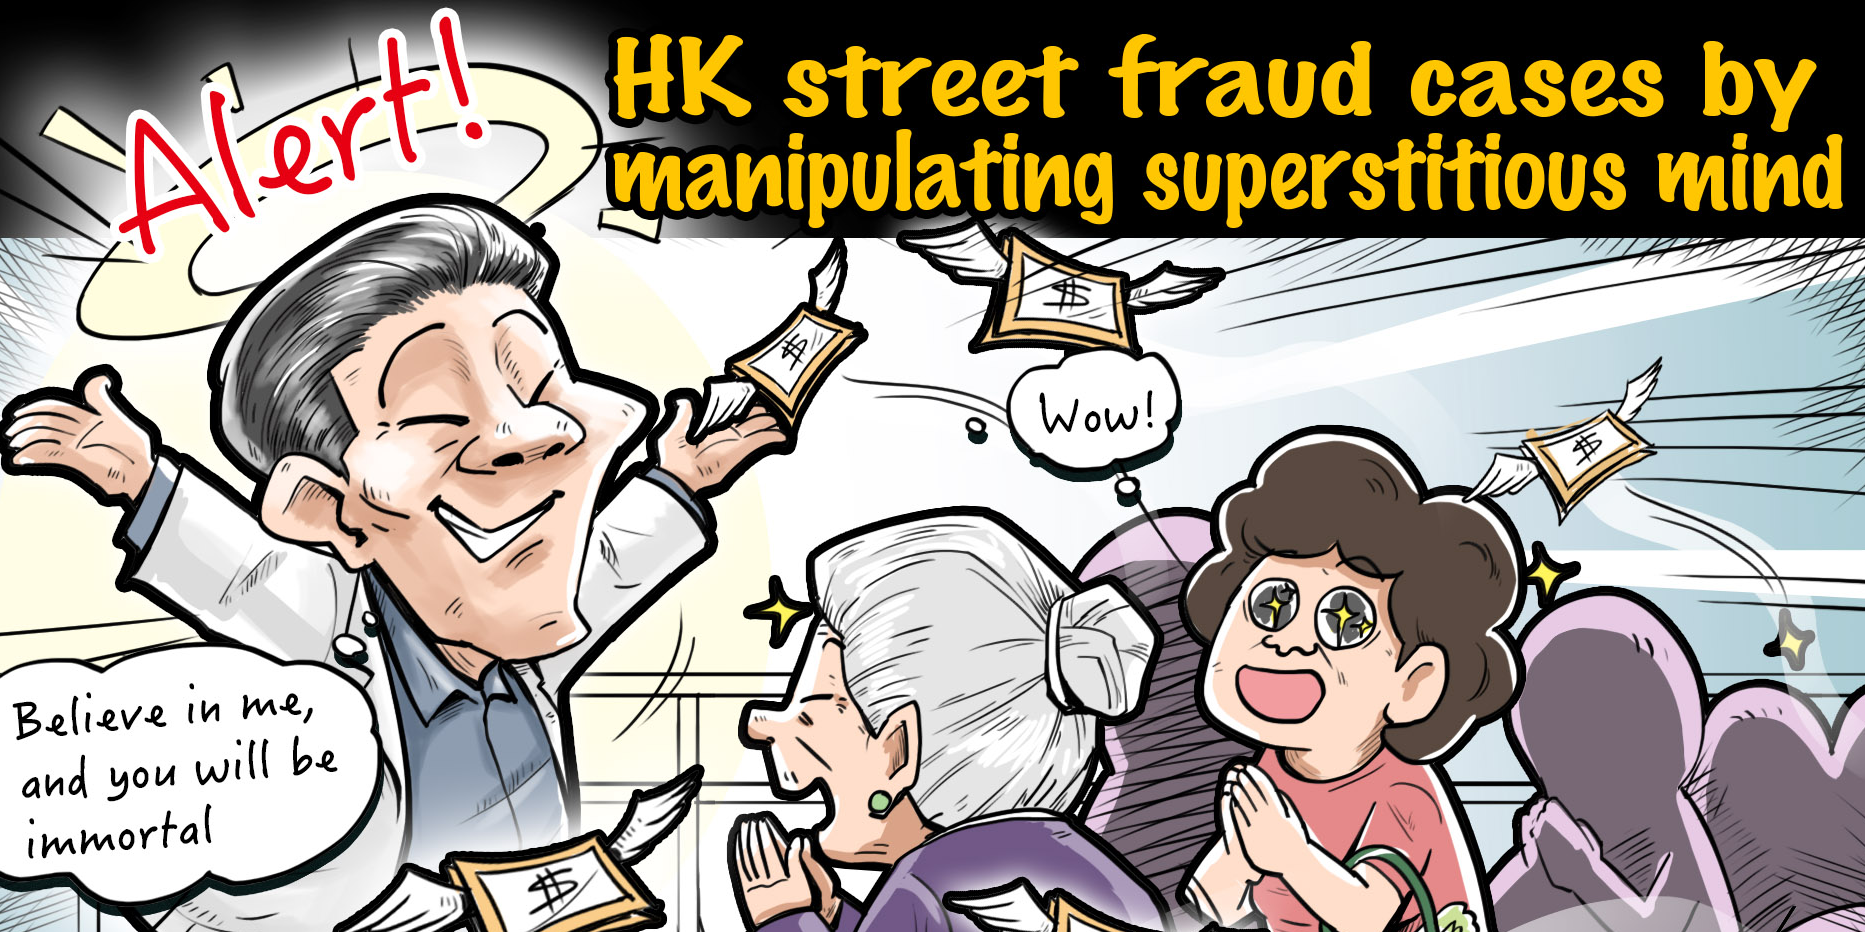 Exclusive Case | Alert! HK street fraud cases by manipulating superstitious mind